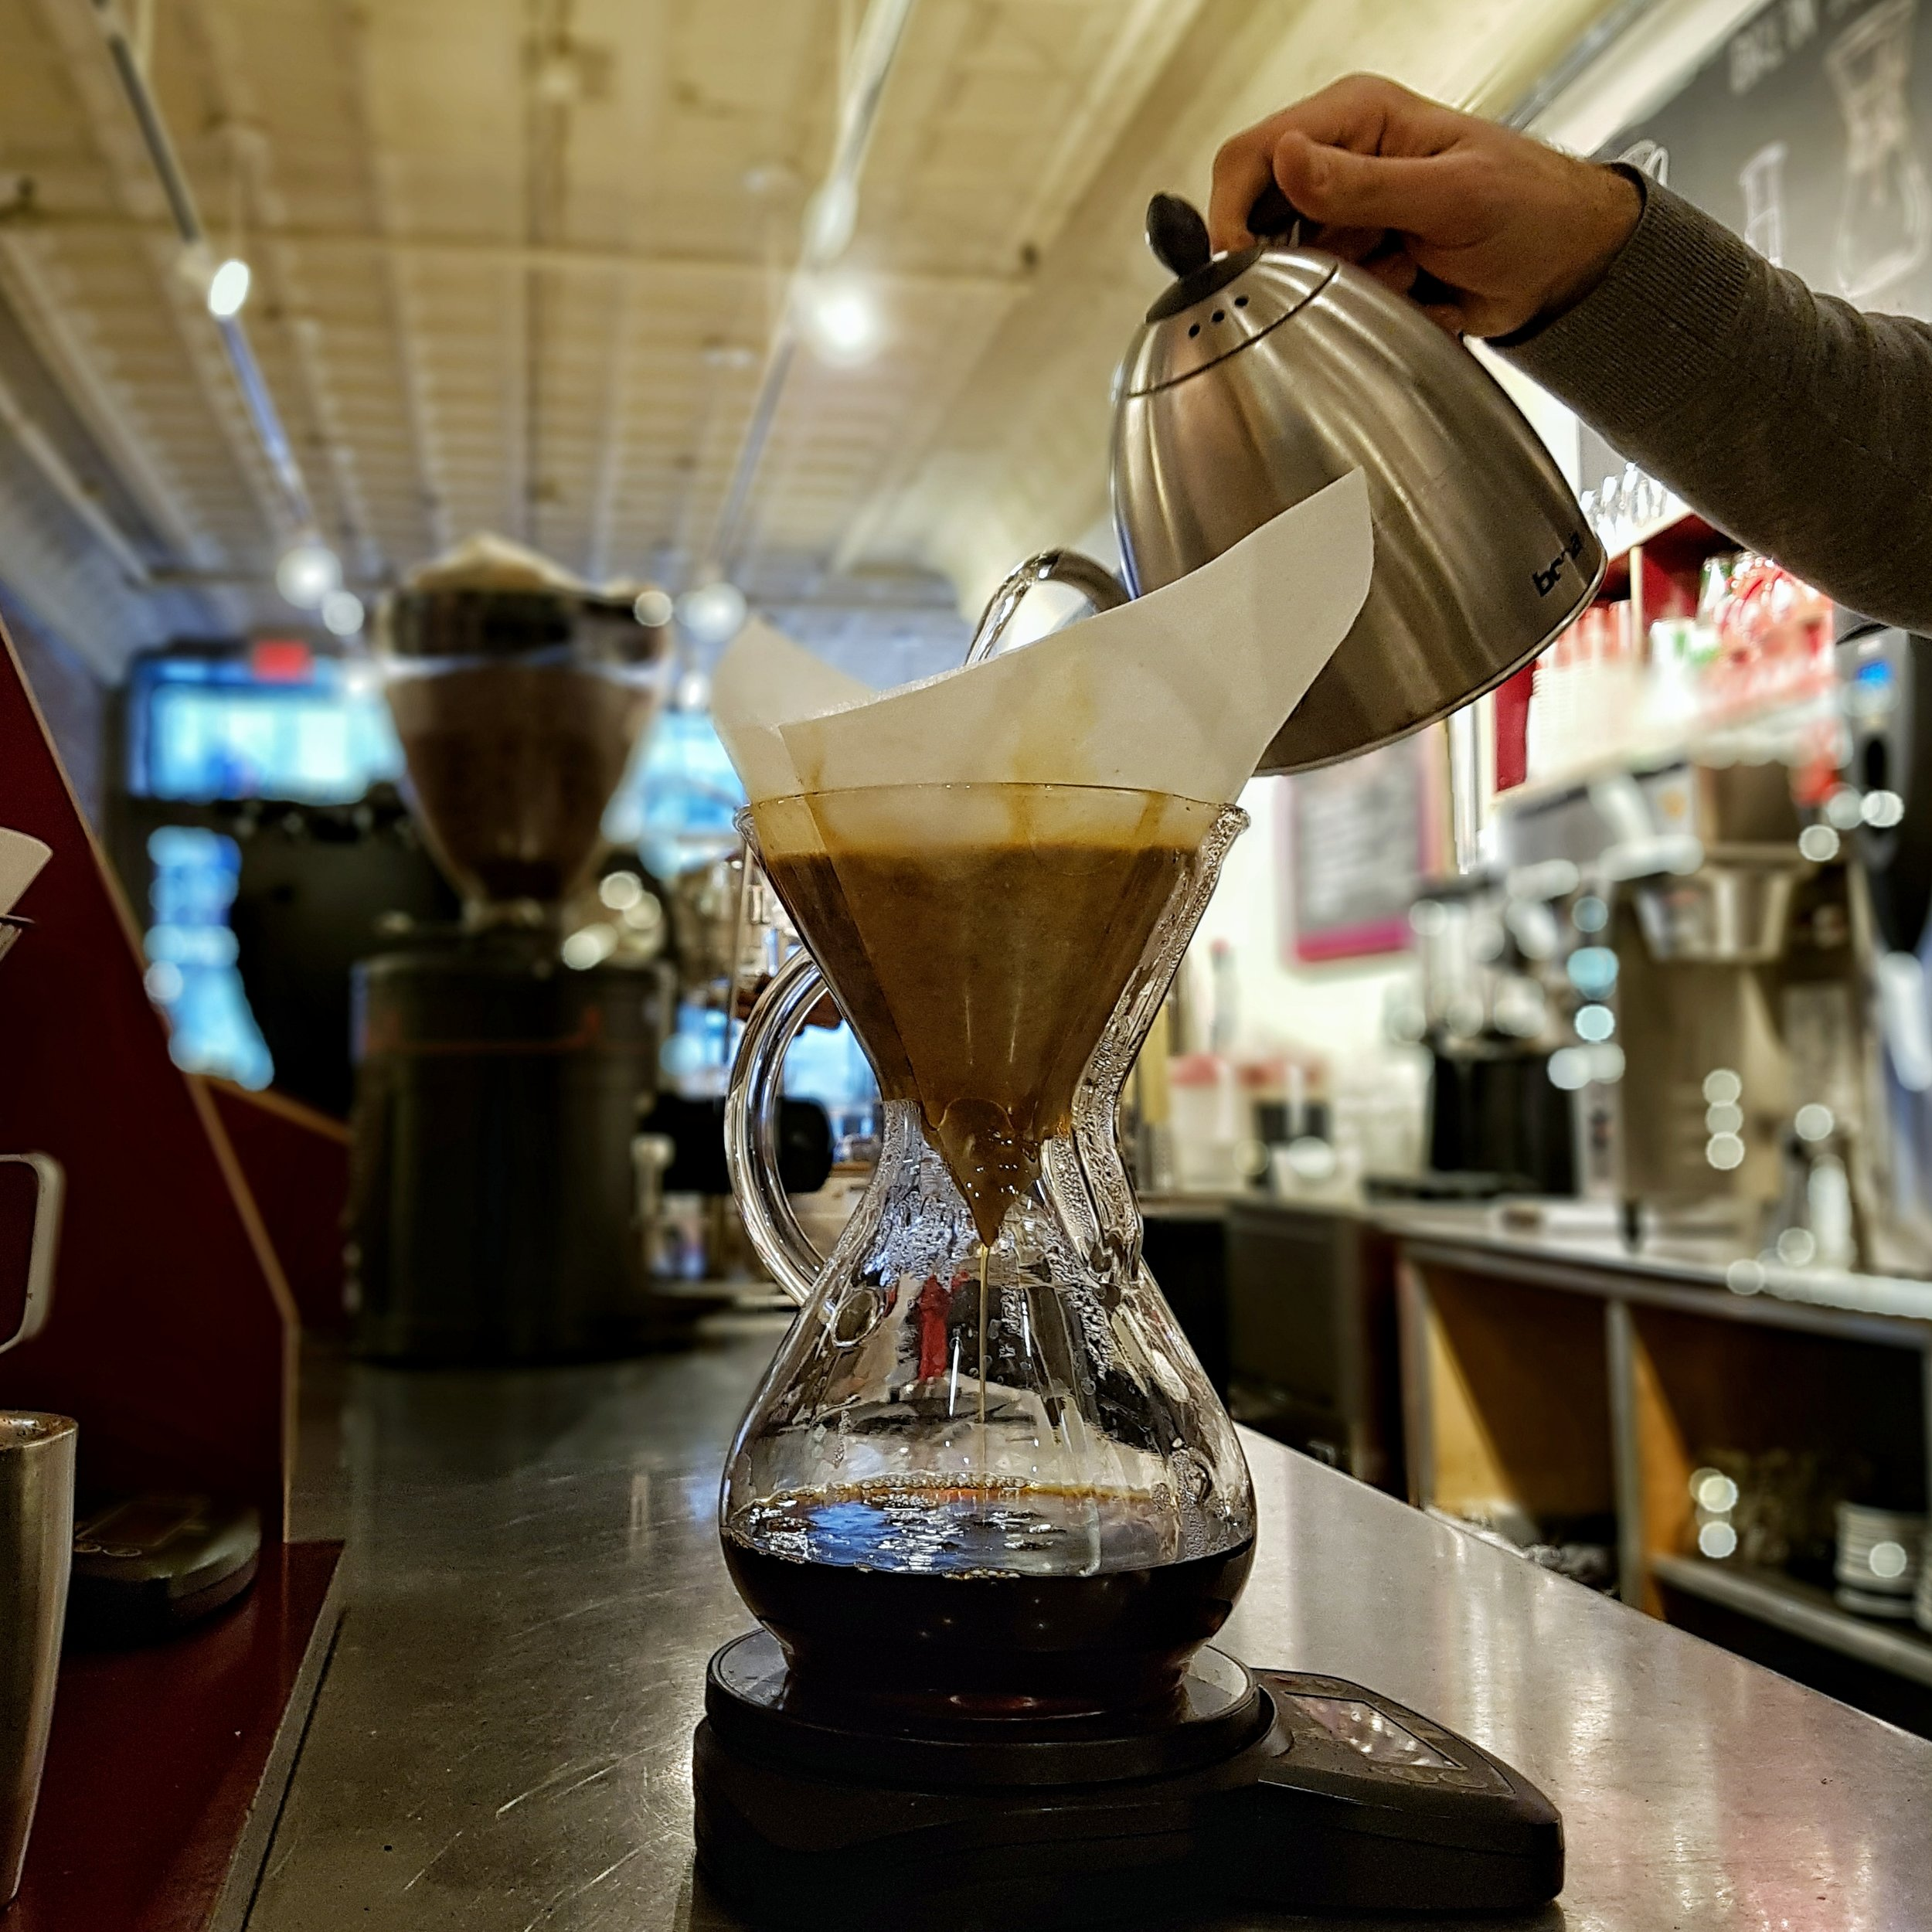 Pouring a Chemex